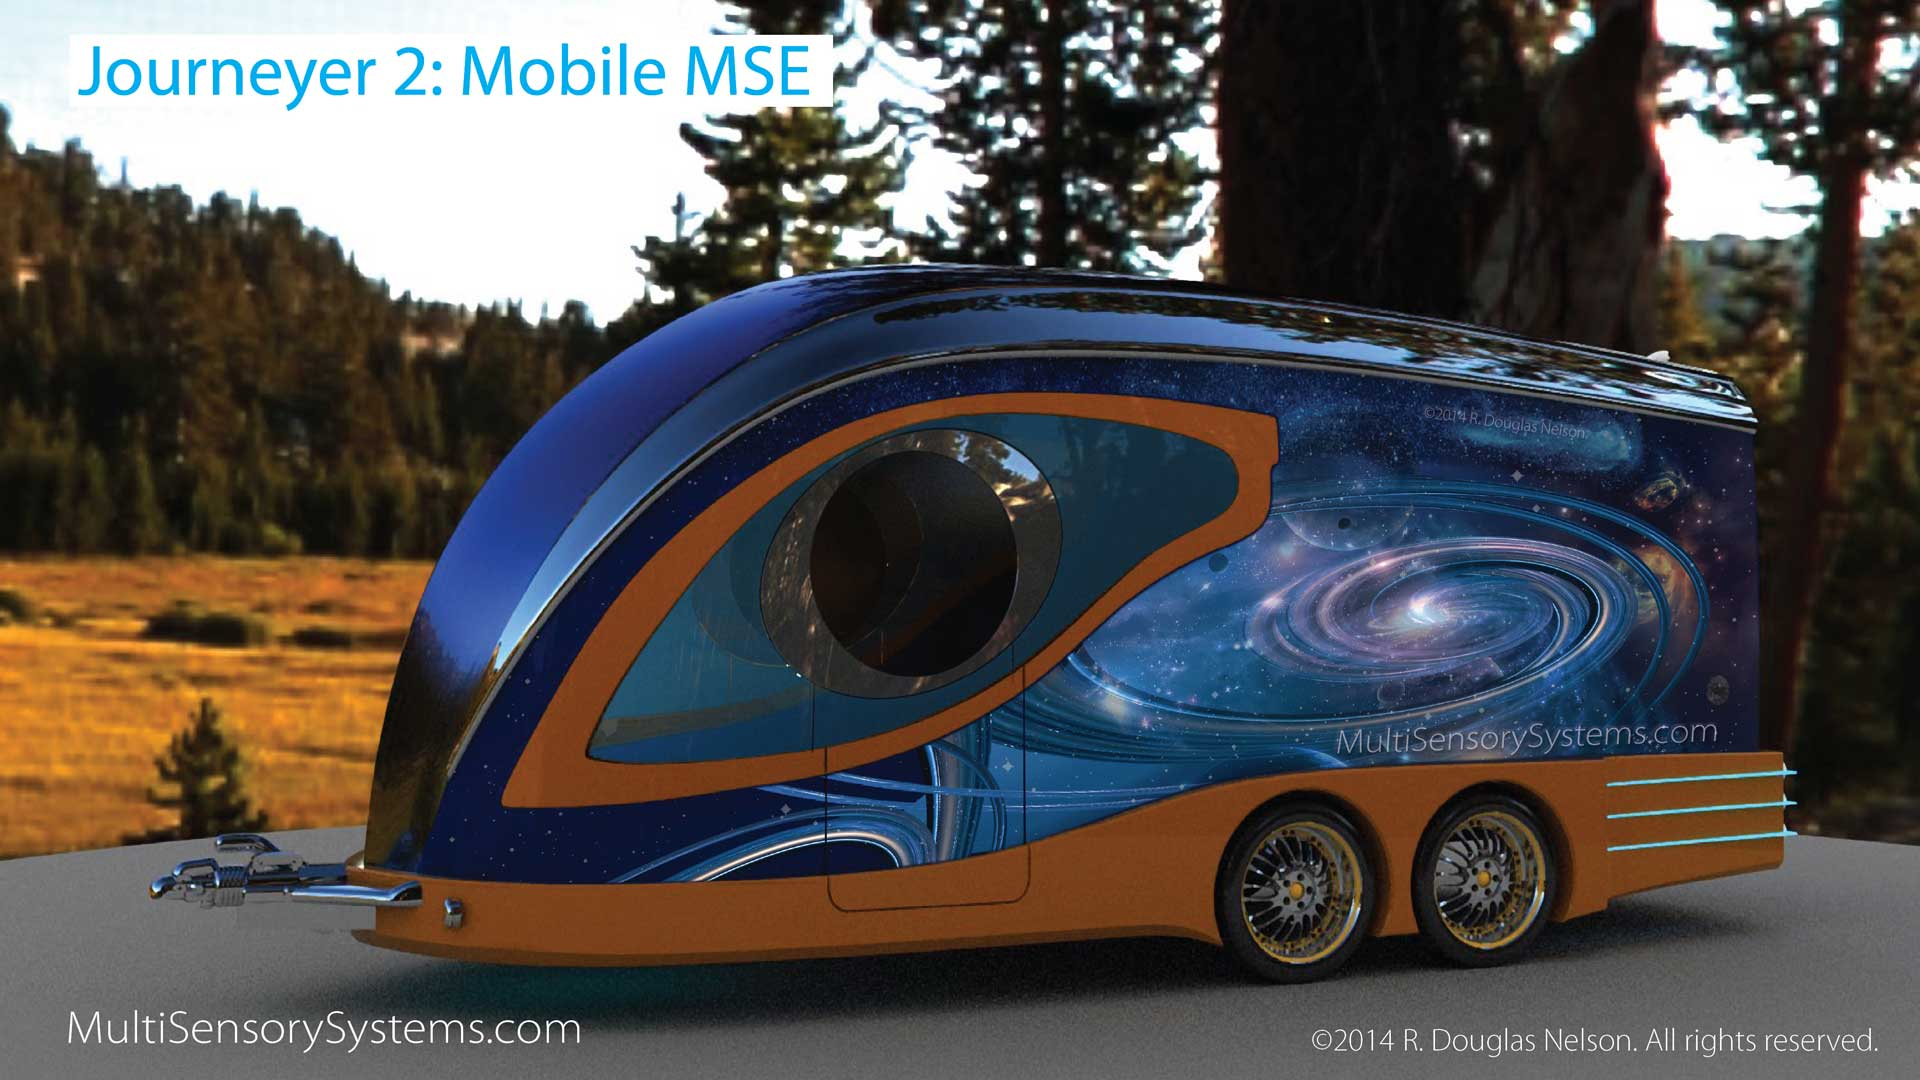 JMobile MultiSensory Enviroment (MSE)